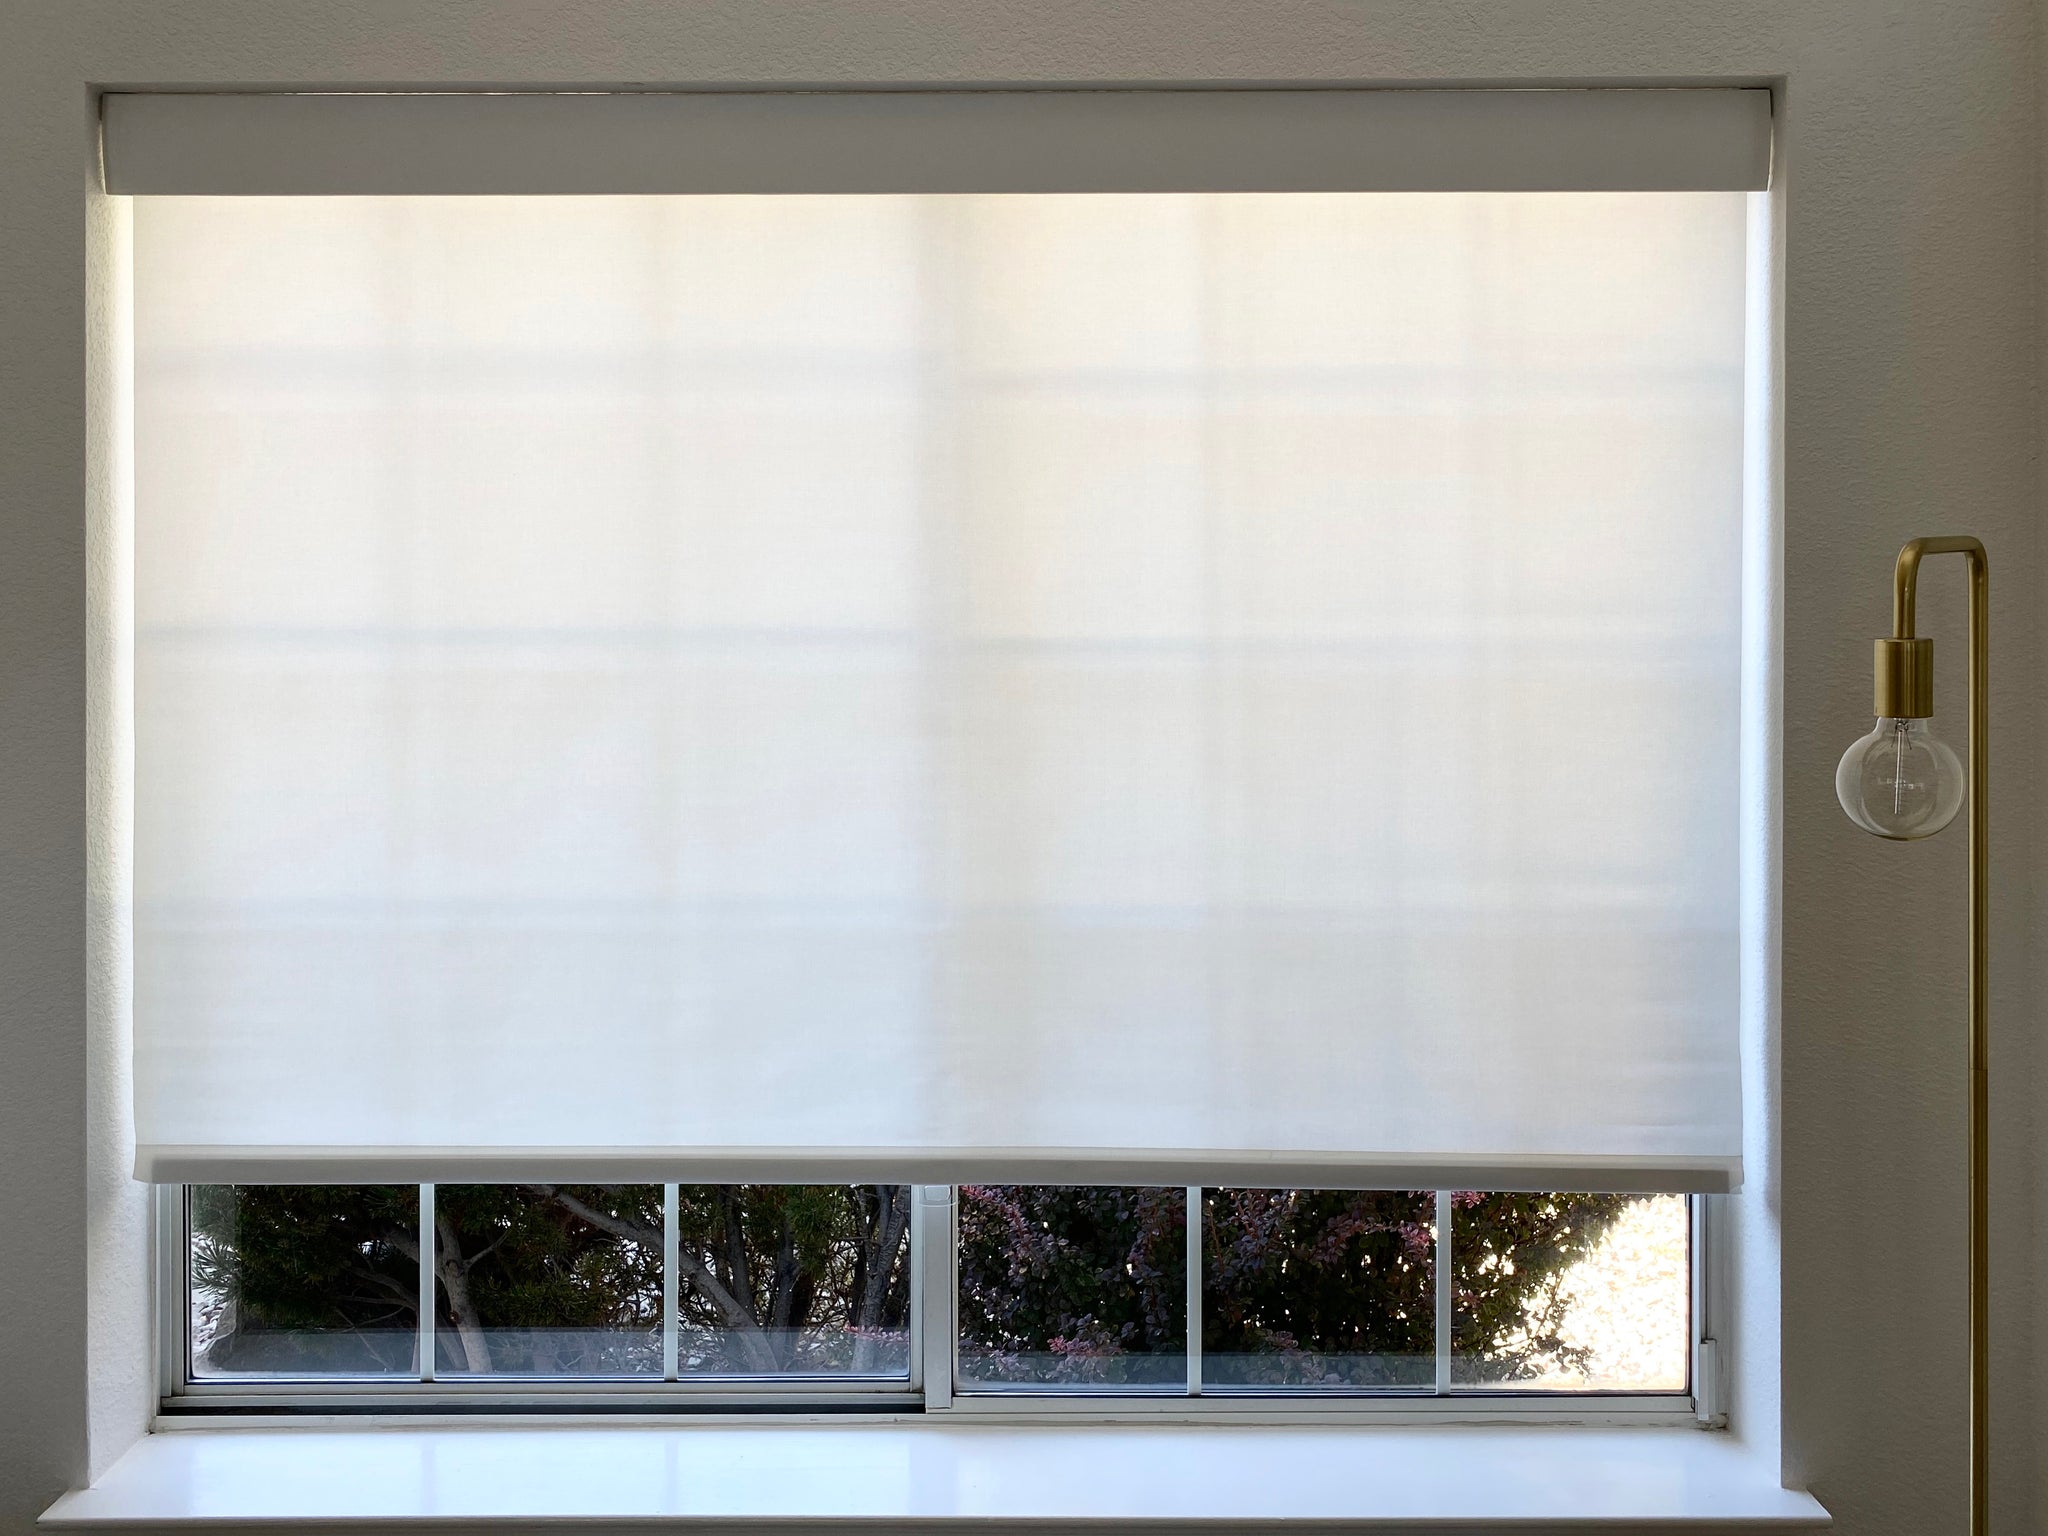 How We Saved Money by Installing Our Own Blinds (and Lived to Tell the Tale!)